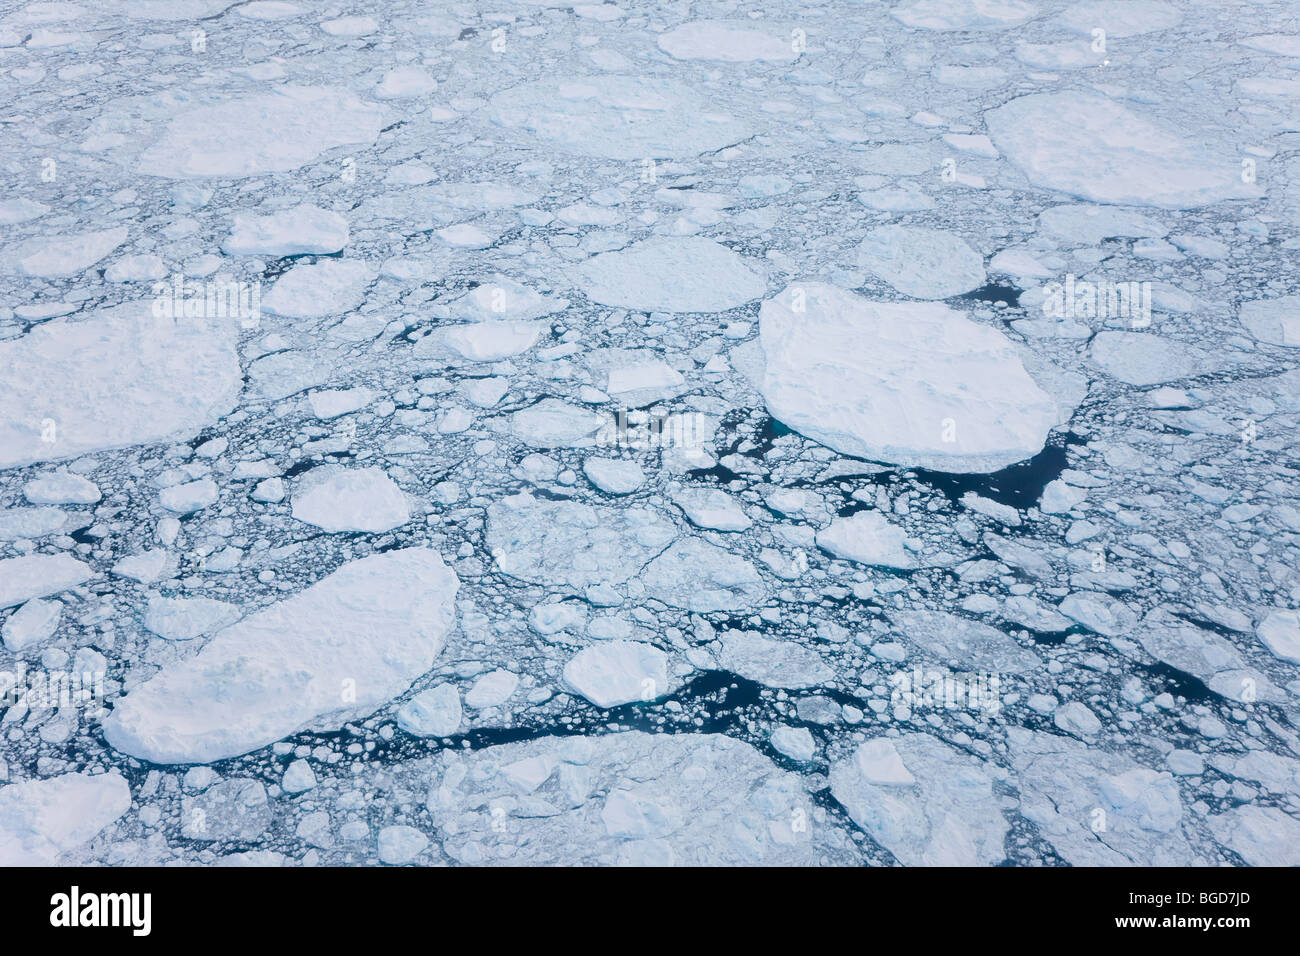 Aeriel view of sea ice, Kulusuk, E. Greenland - Stock Image